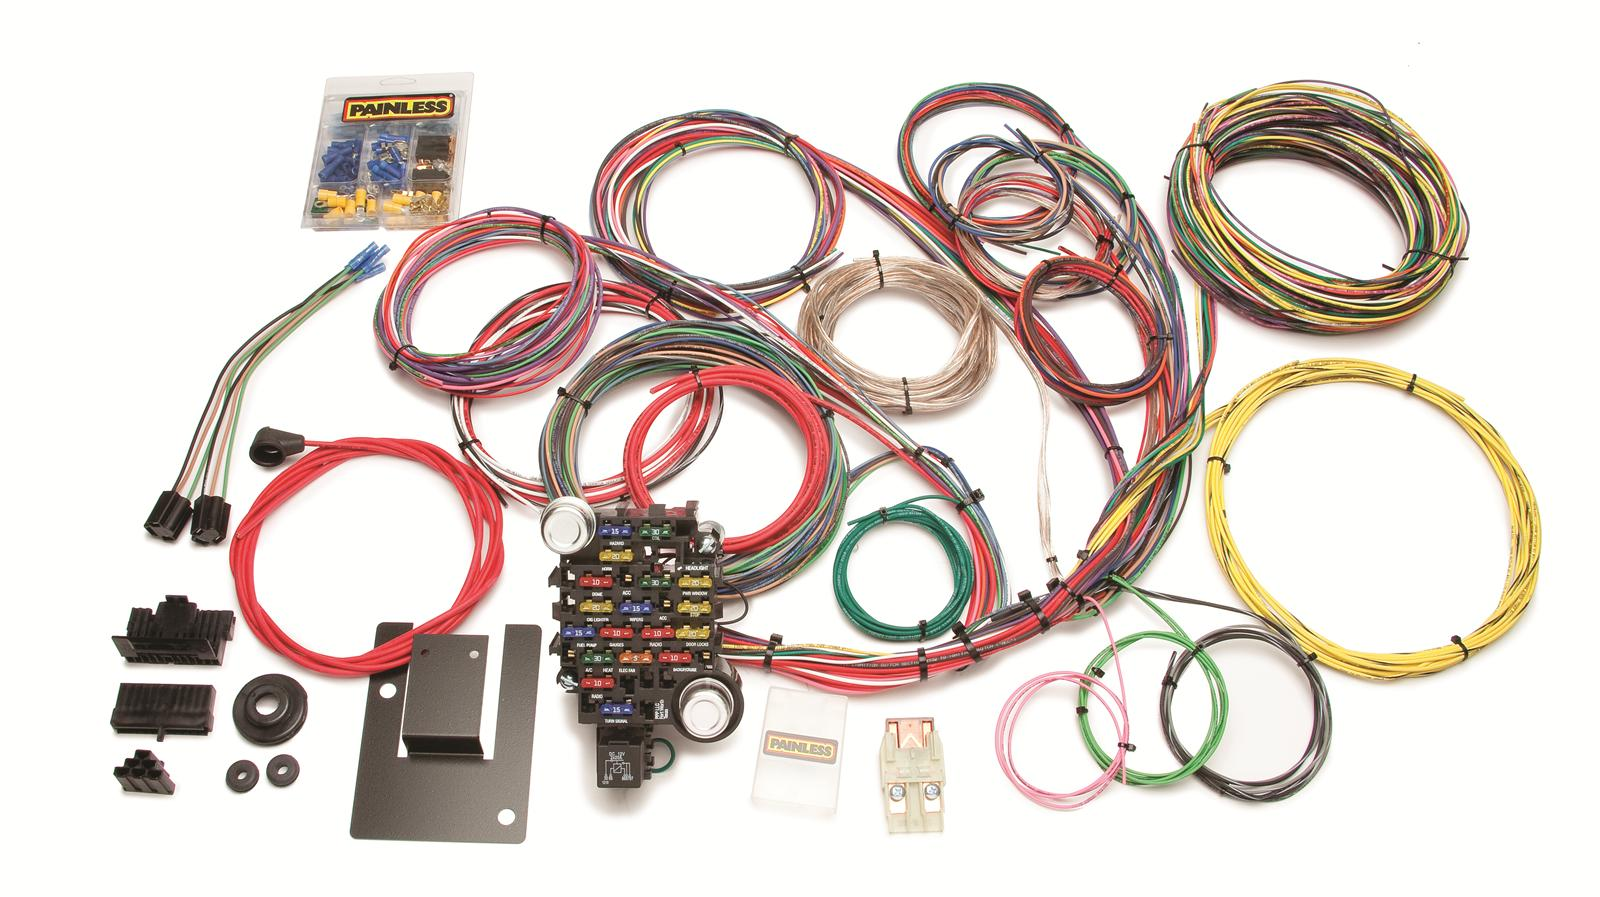 1955 Painless Wiring Harness 28 Diagram Images 1956 Bel Air Prf 20106 Xl Performance Circuit 57 Tri Five Chevy Harnesses